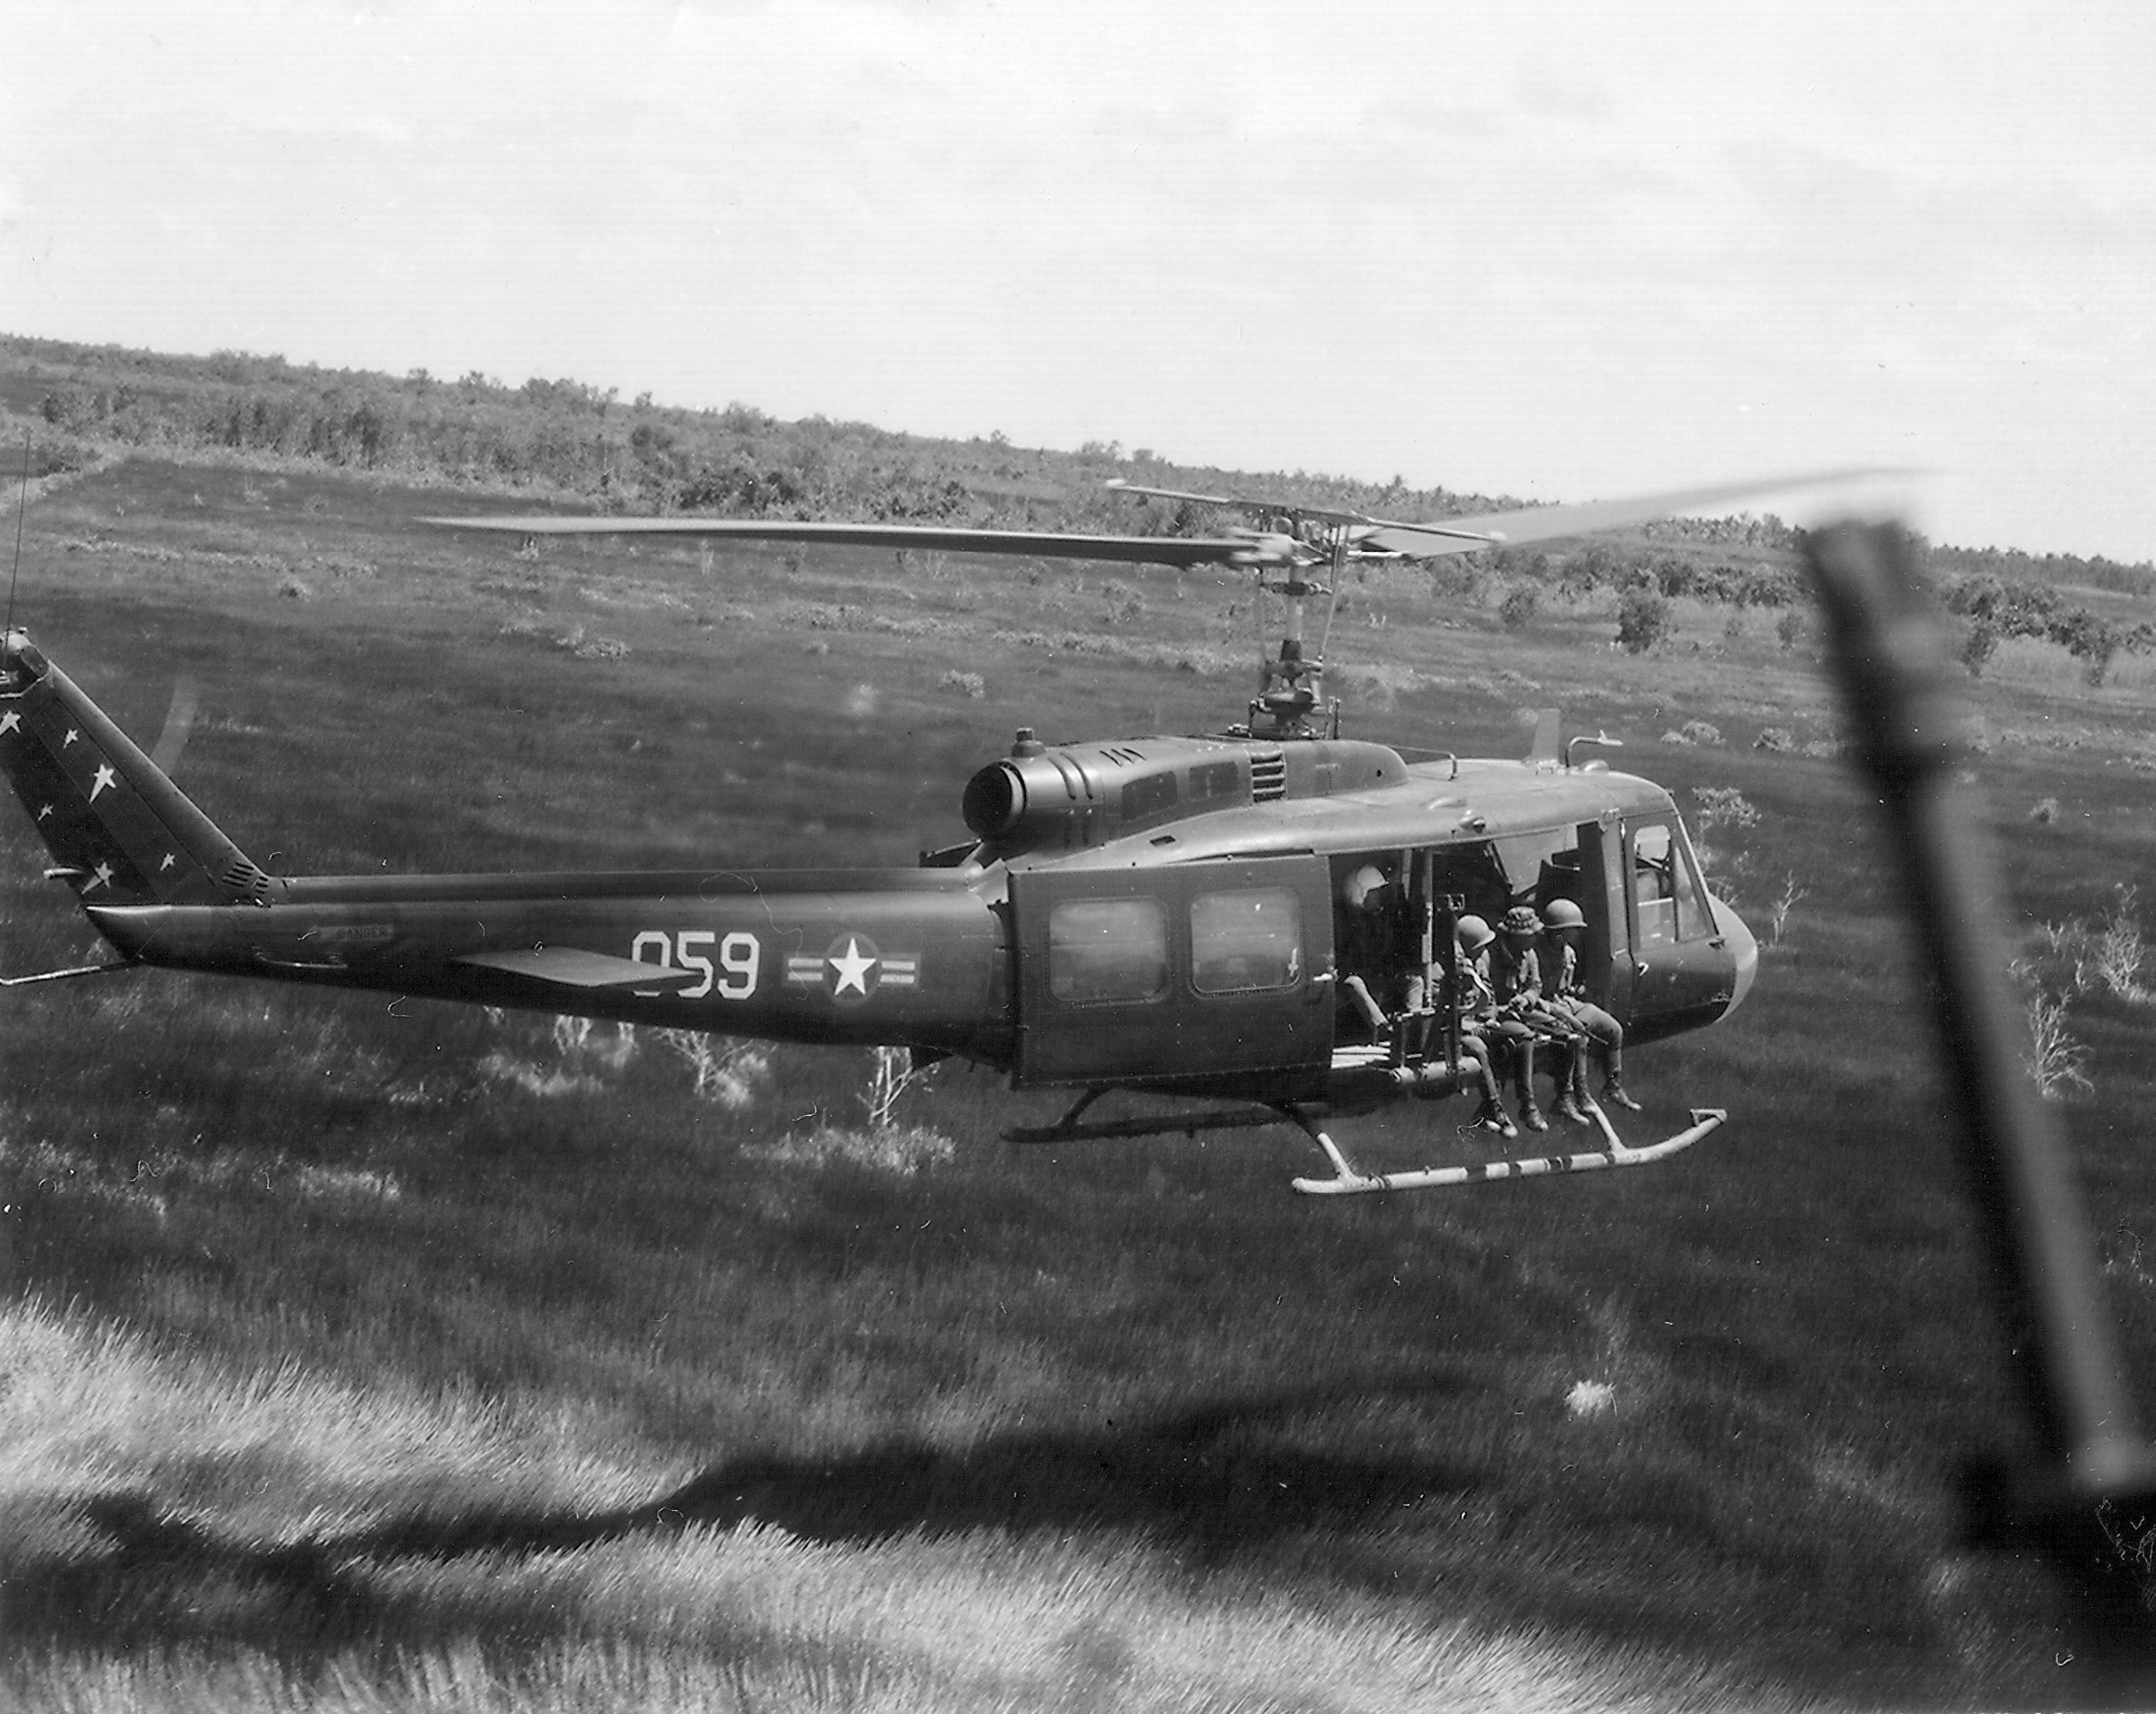 Huey Helicopter For Sale >> Bell UH-1 Iroquois   Military Wiki   FANDOM powered by Wikia